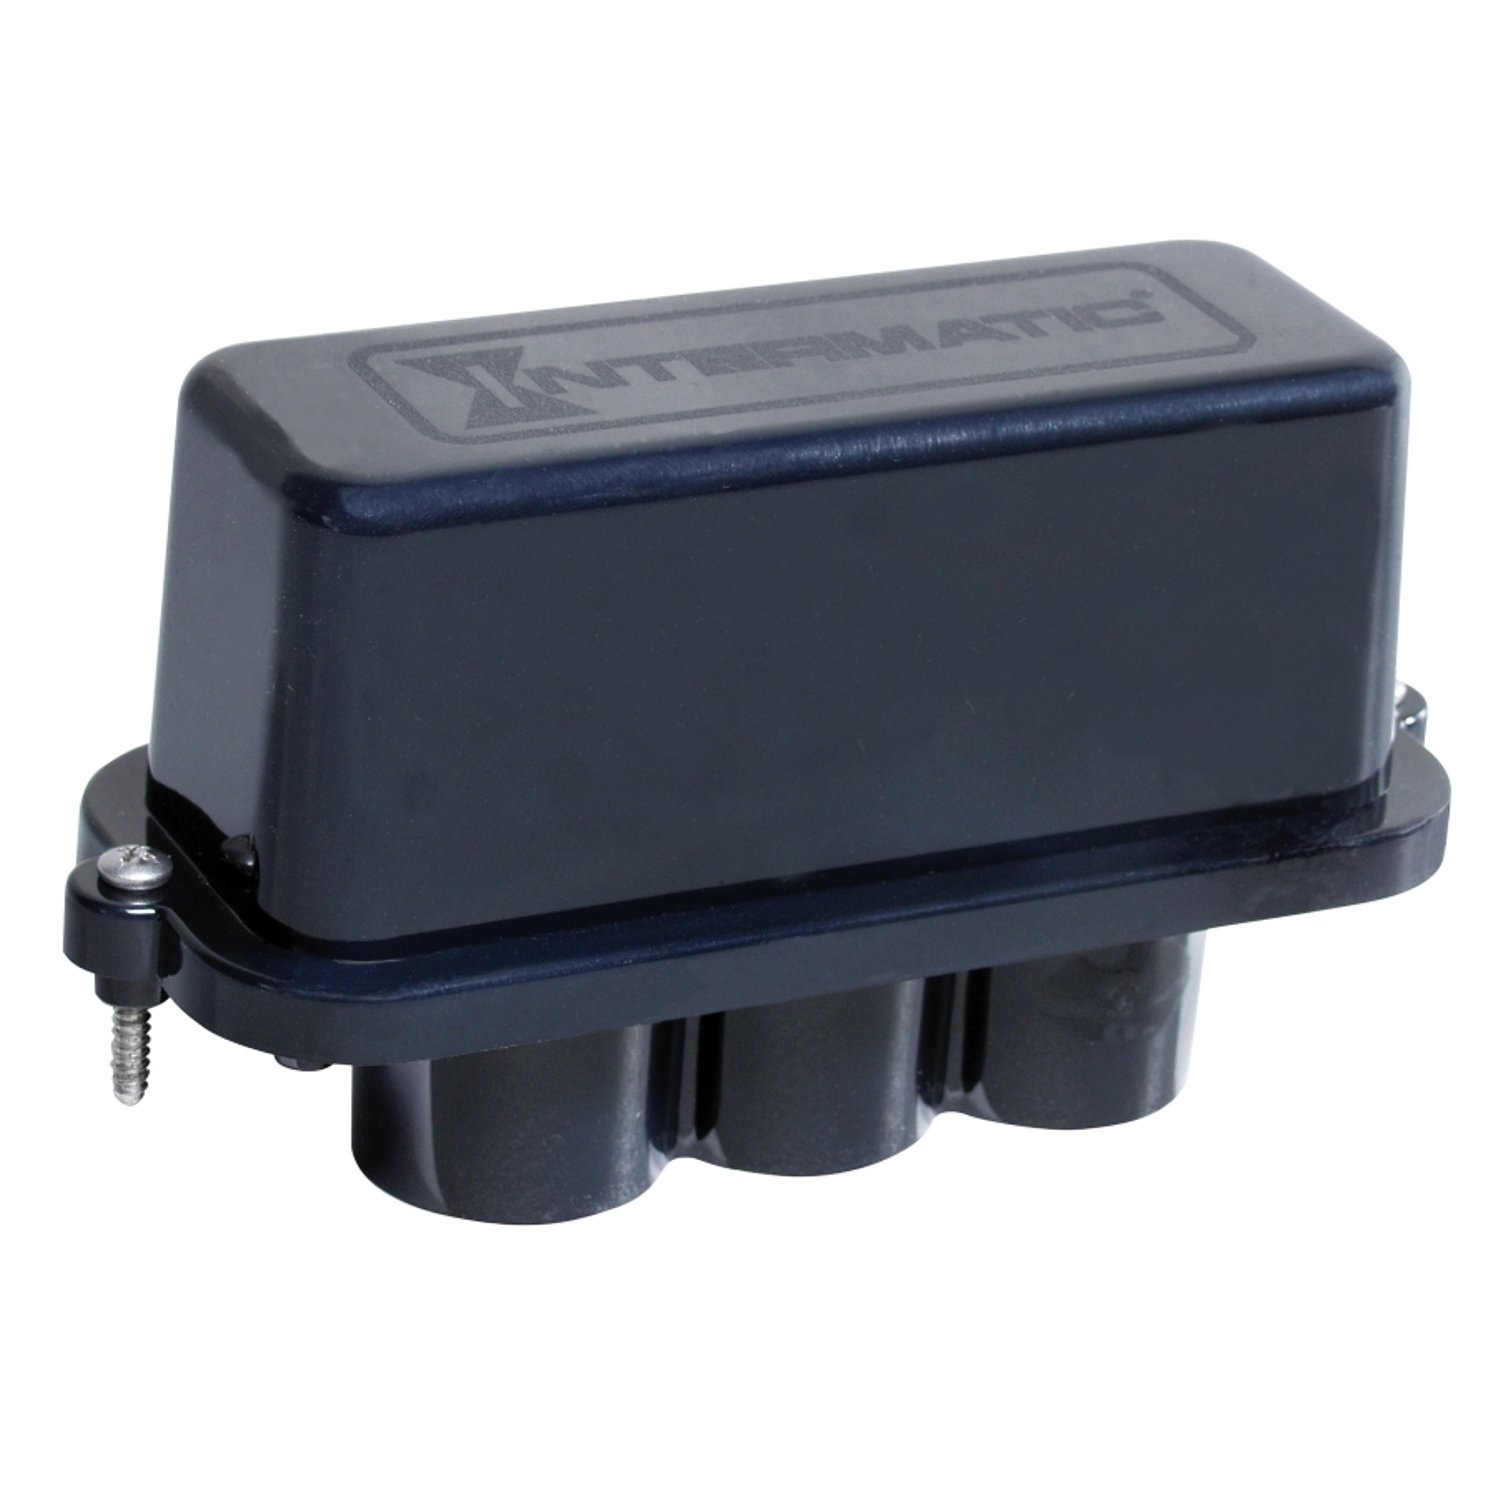 Intermatic PJB2175 2-Light Pool/Spa Junction Box